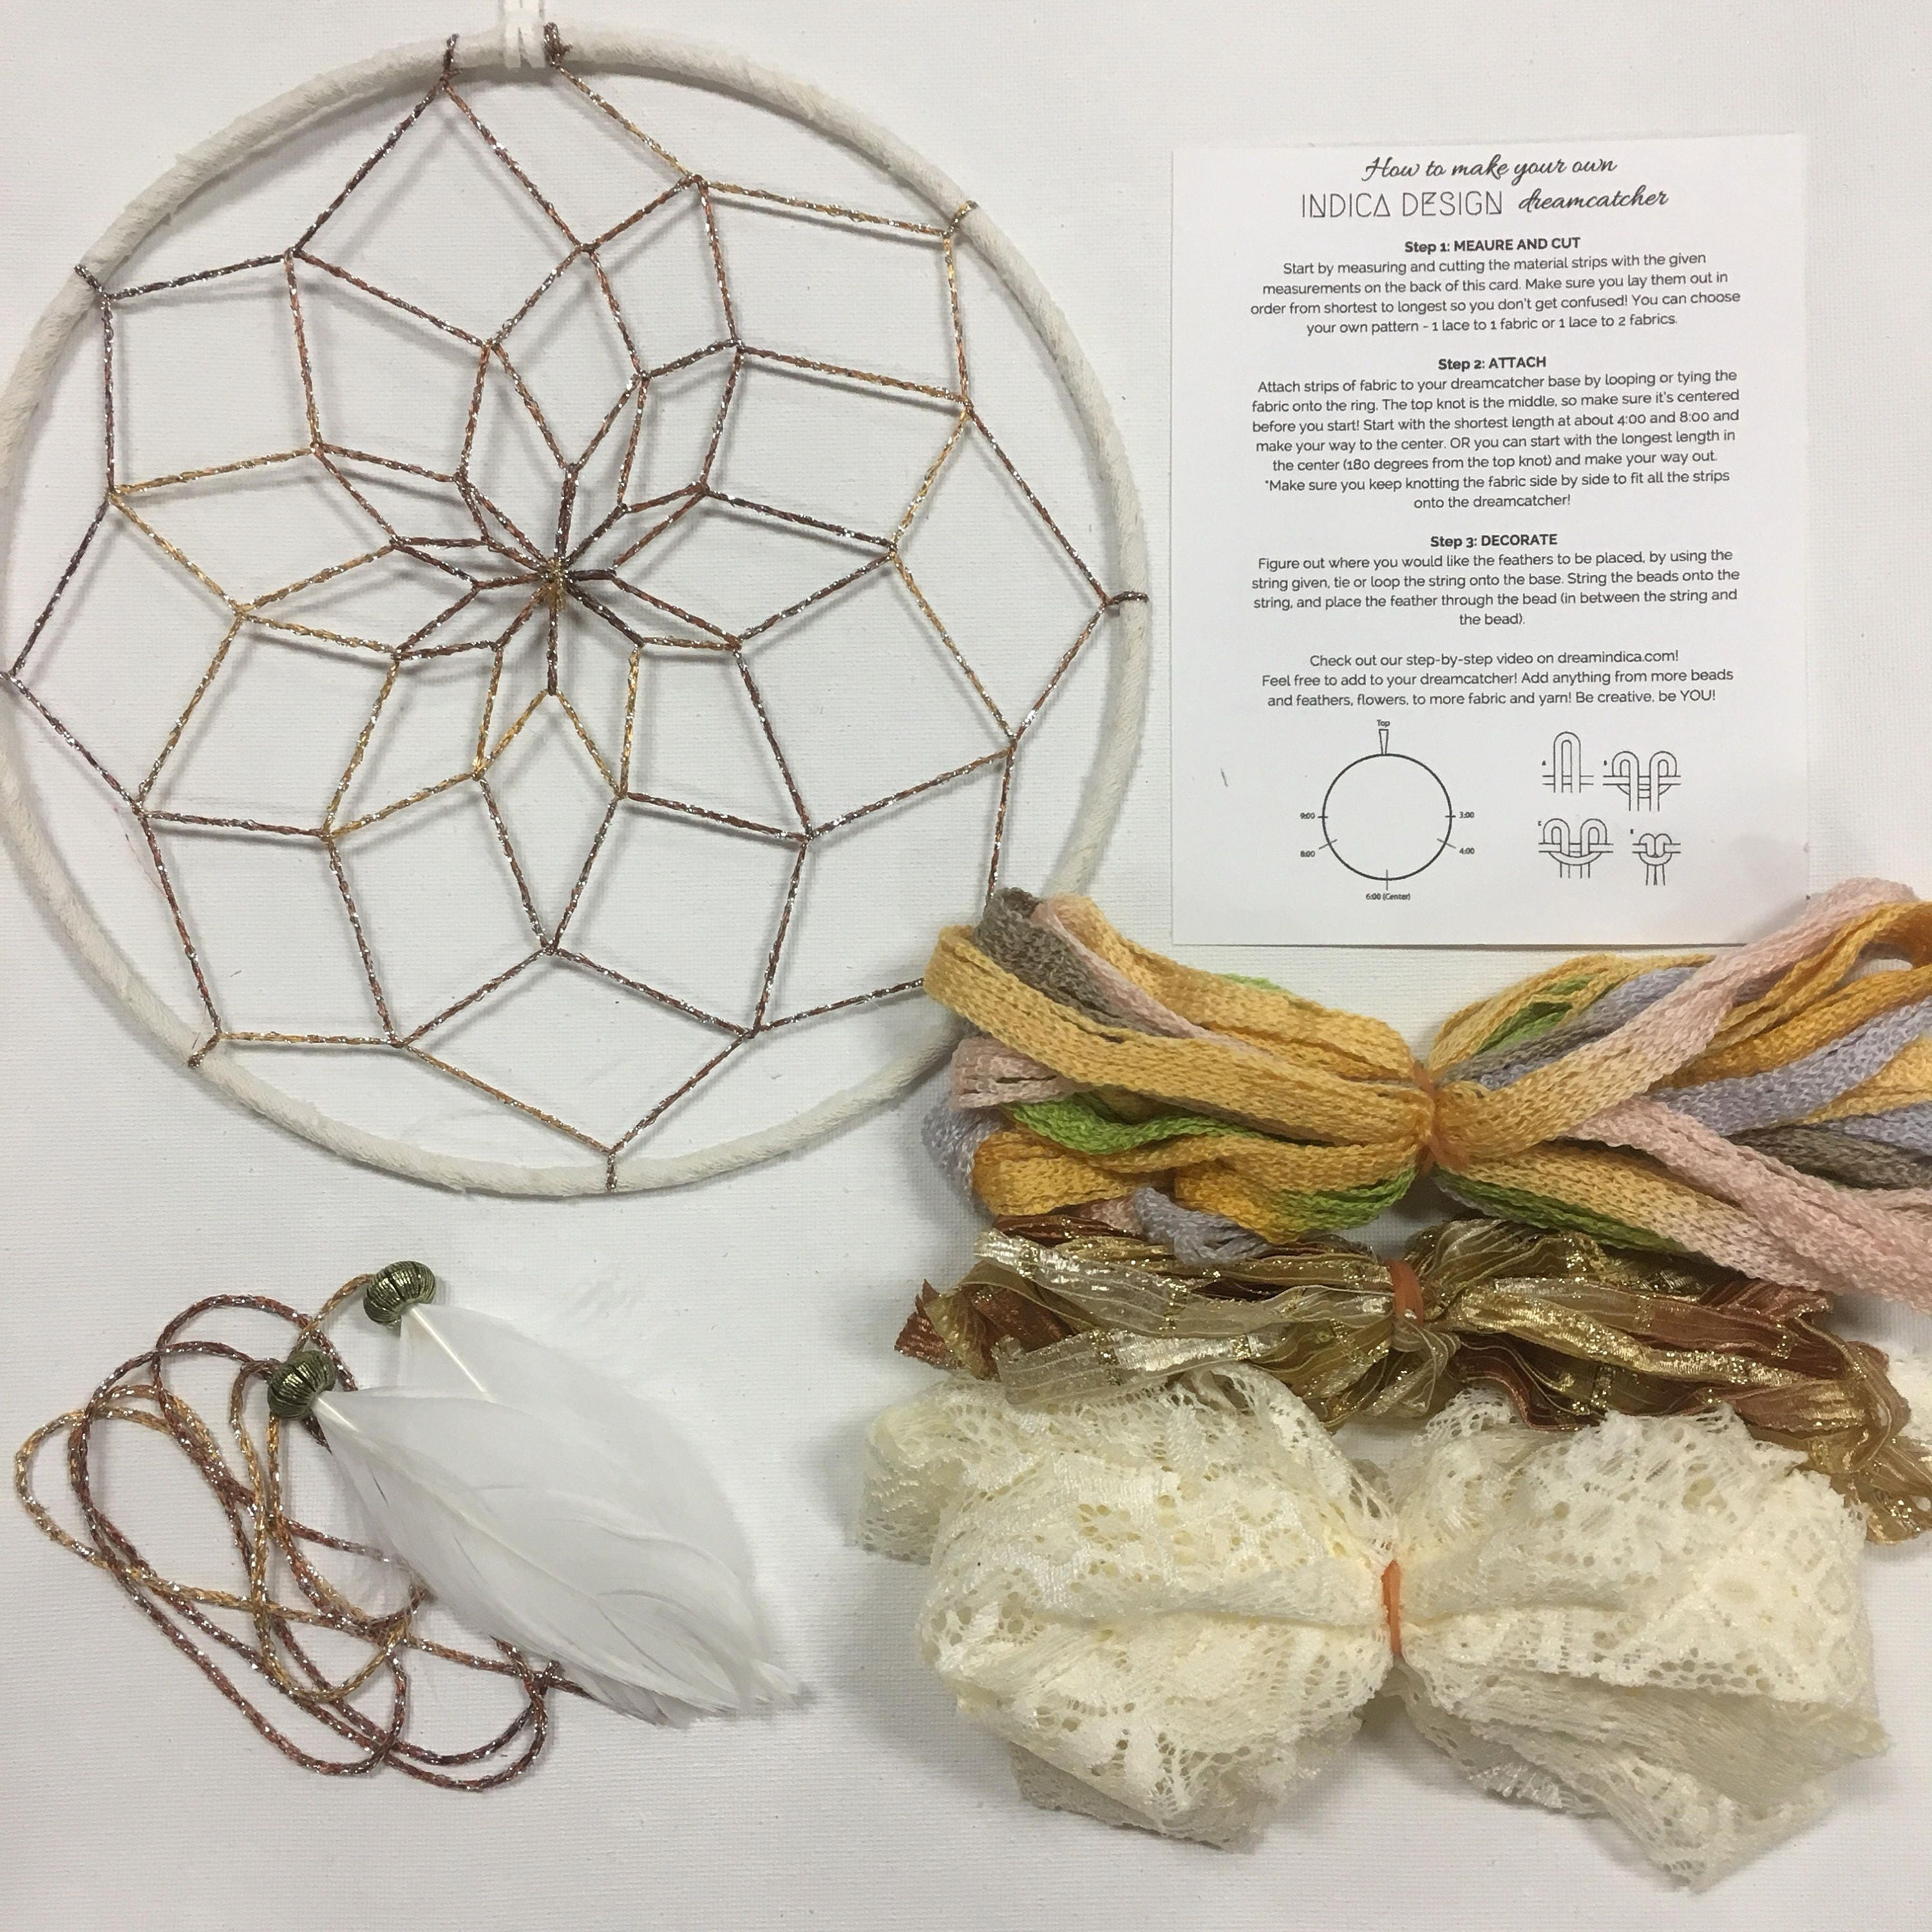 Can Dream Catchers Get Full Tahiti Sunrise DIY Dream Catcher kit 17